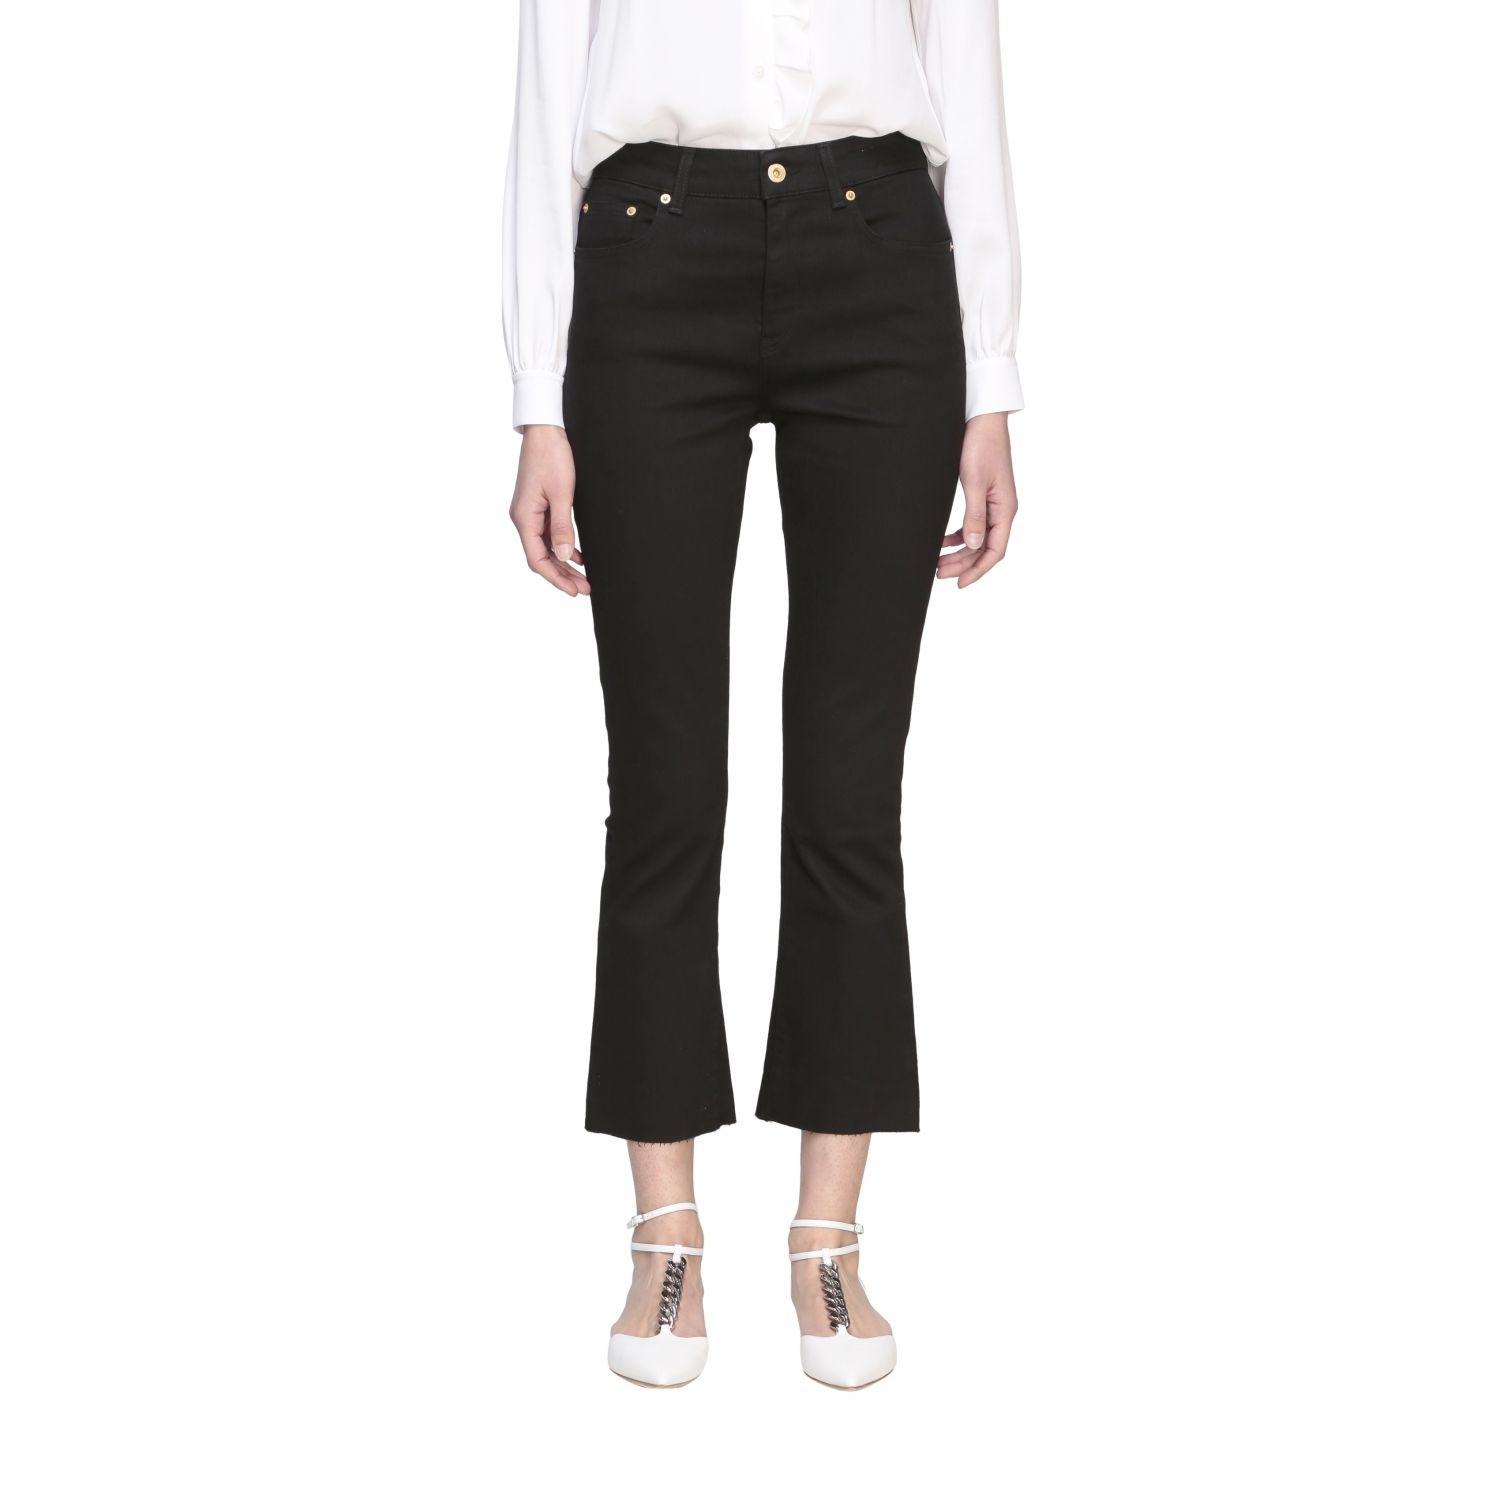 Department 5 Clare slim fit jeans with 5 pockets black 1